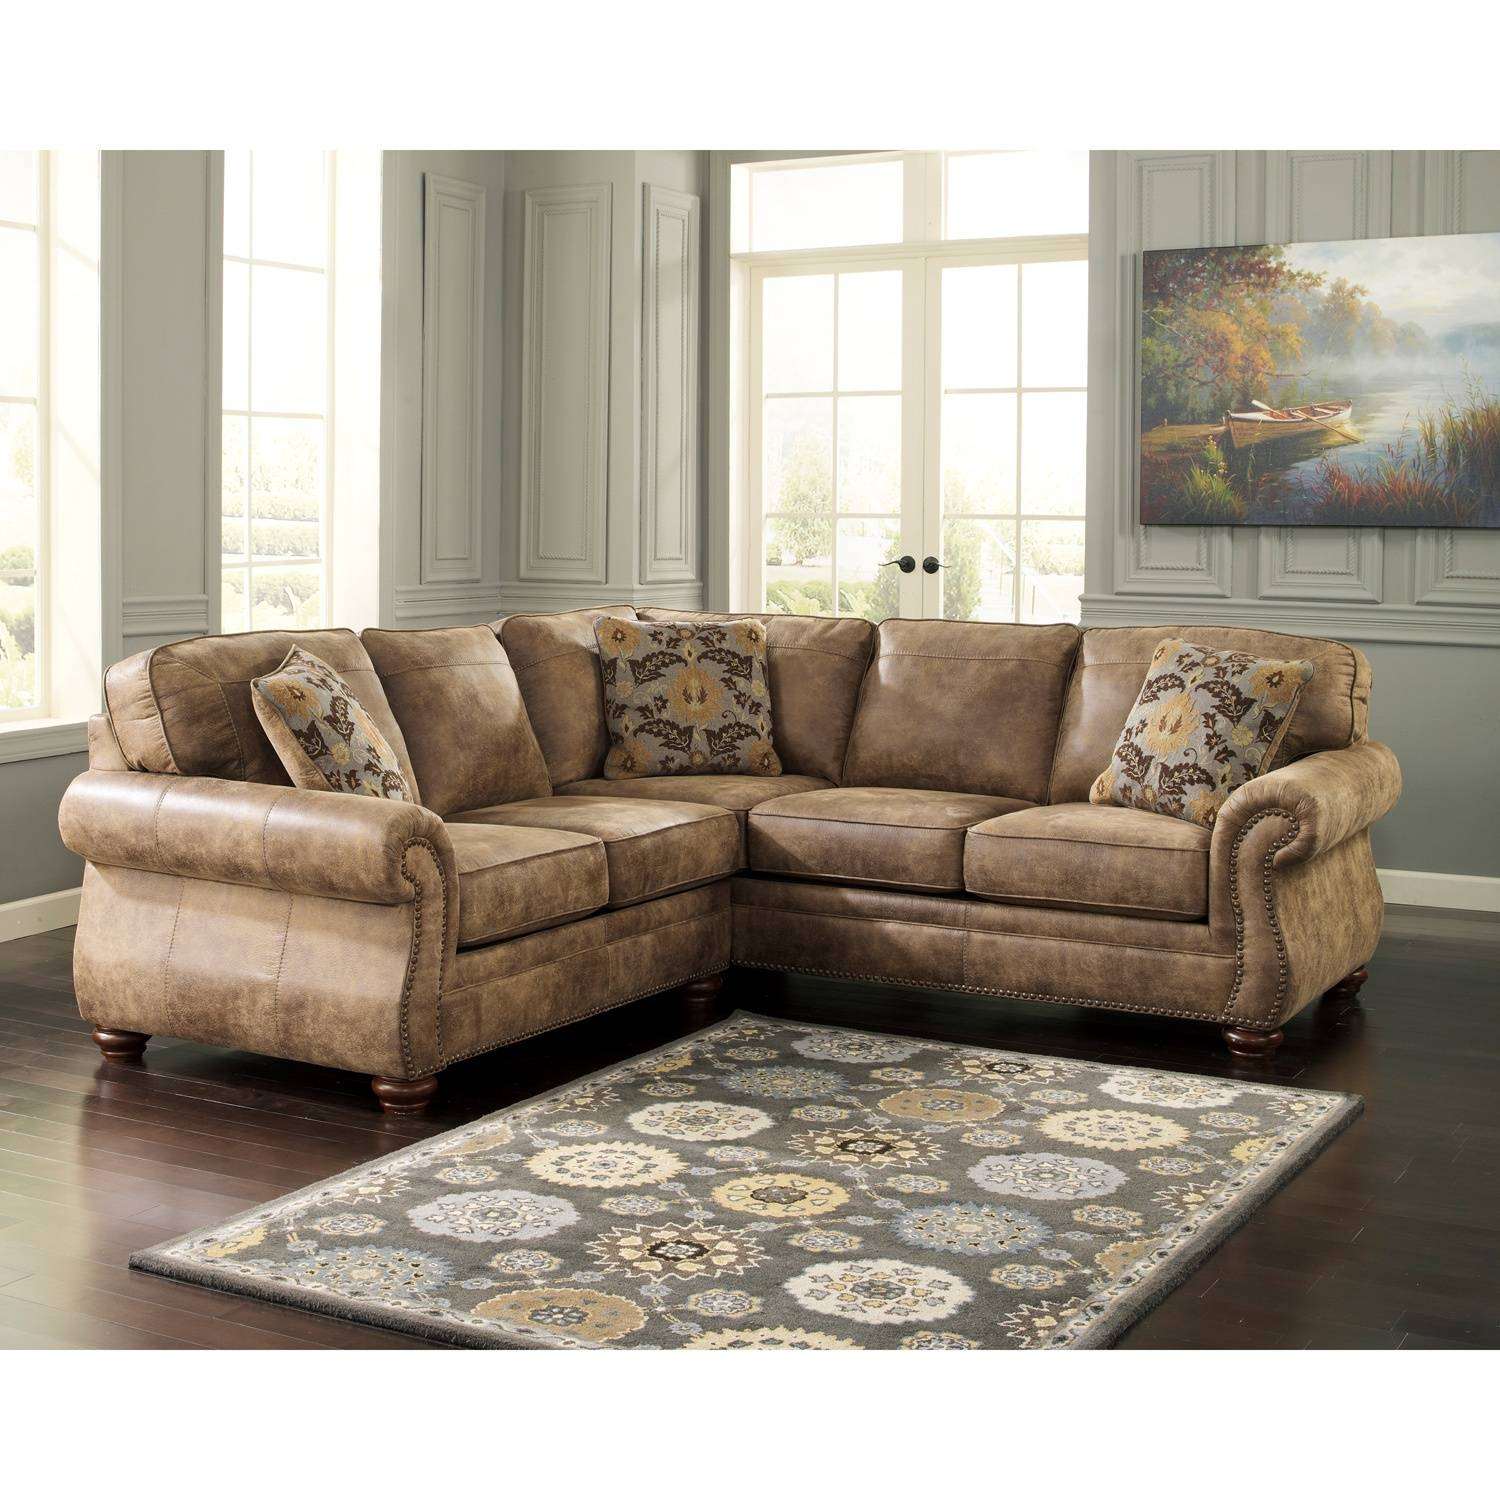 Chair & Sofa: Have An Interesting Living Room With Ashley regarding Small 2 Piece Sectional Sofas (Image 8 of 30)